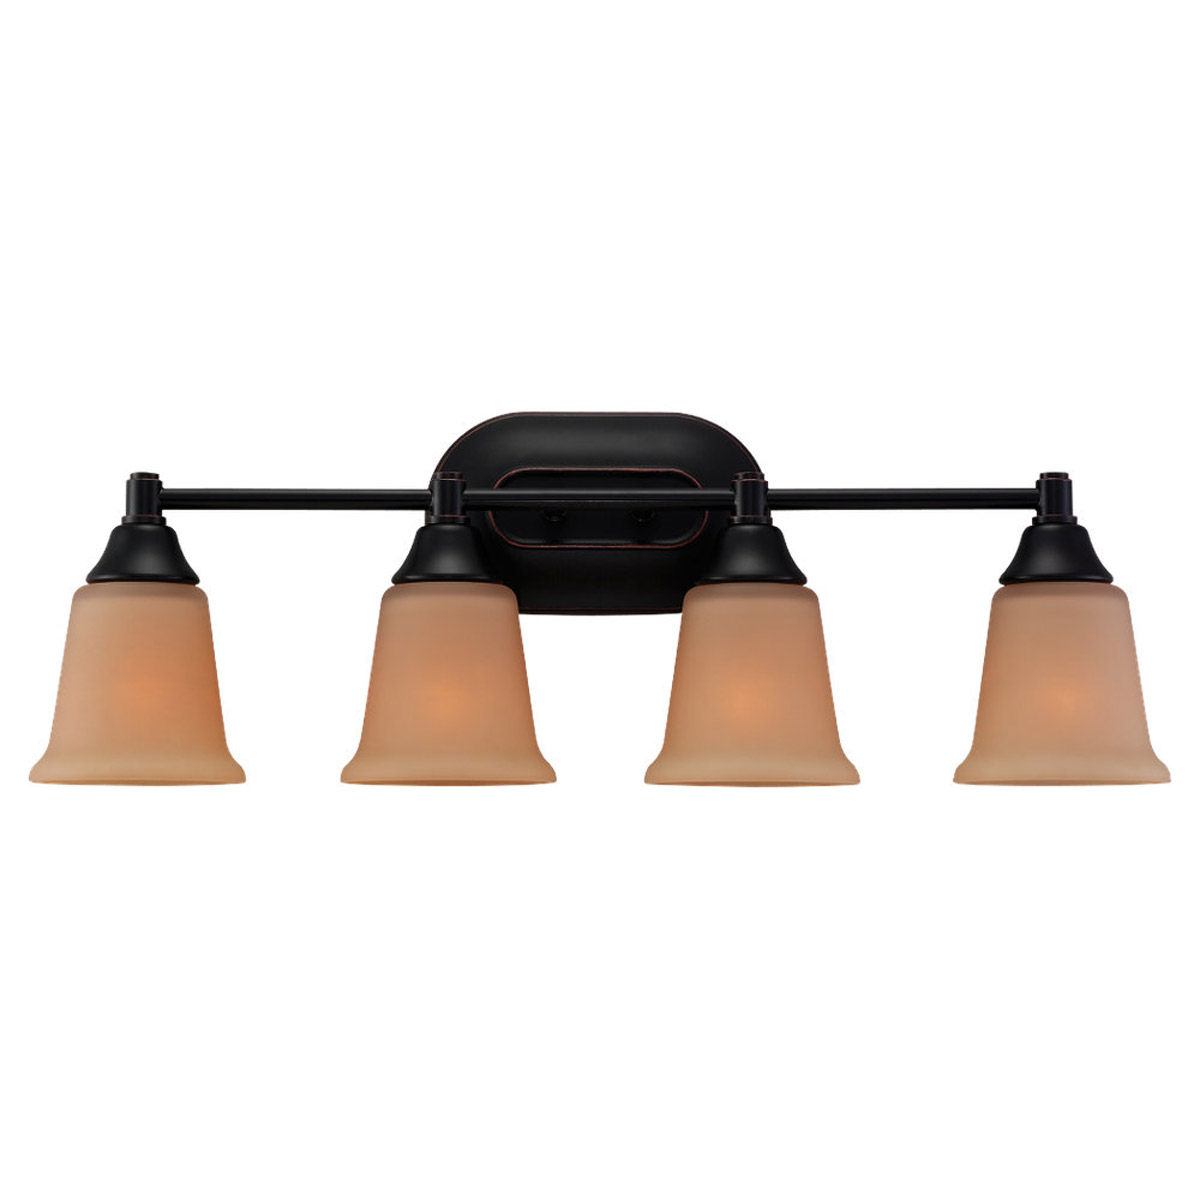 Sea Gull Lighting Belair 4 Light Fluorescent Wall/Bath/Vanity in Vintage Brown 44793BLE-862